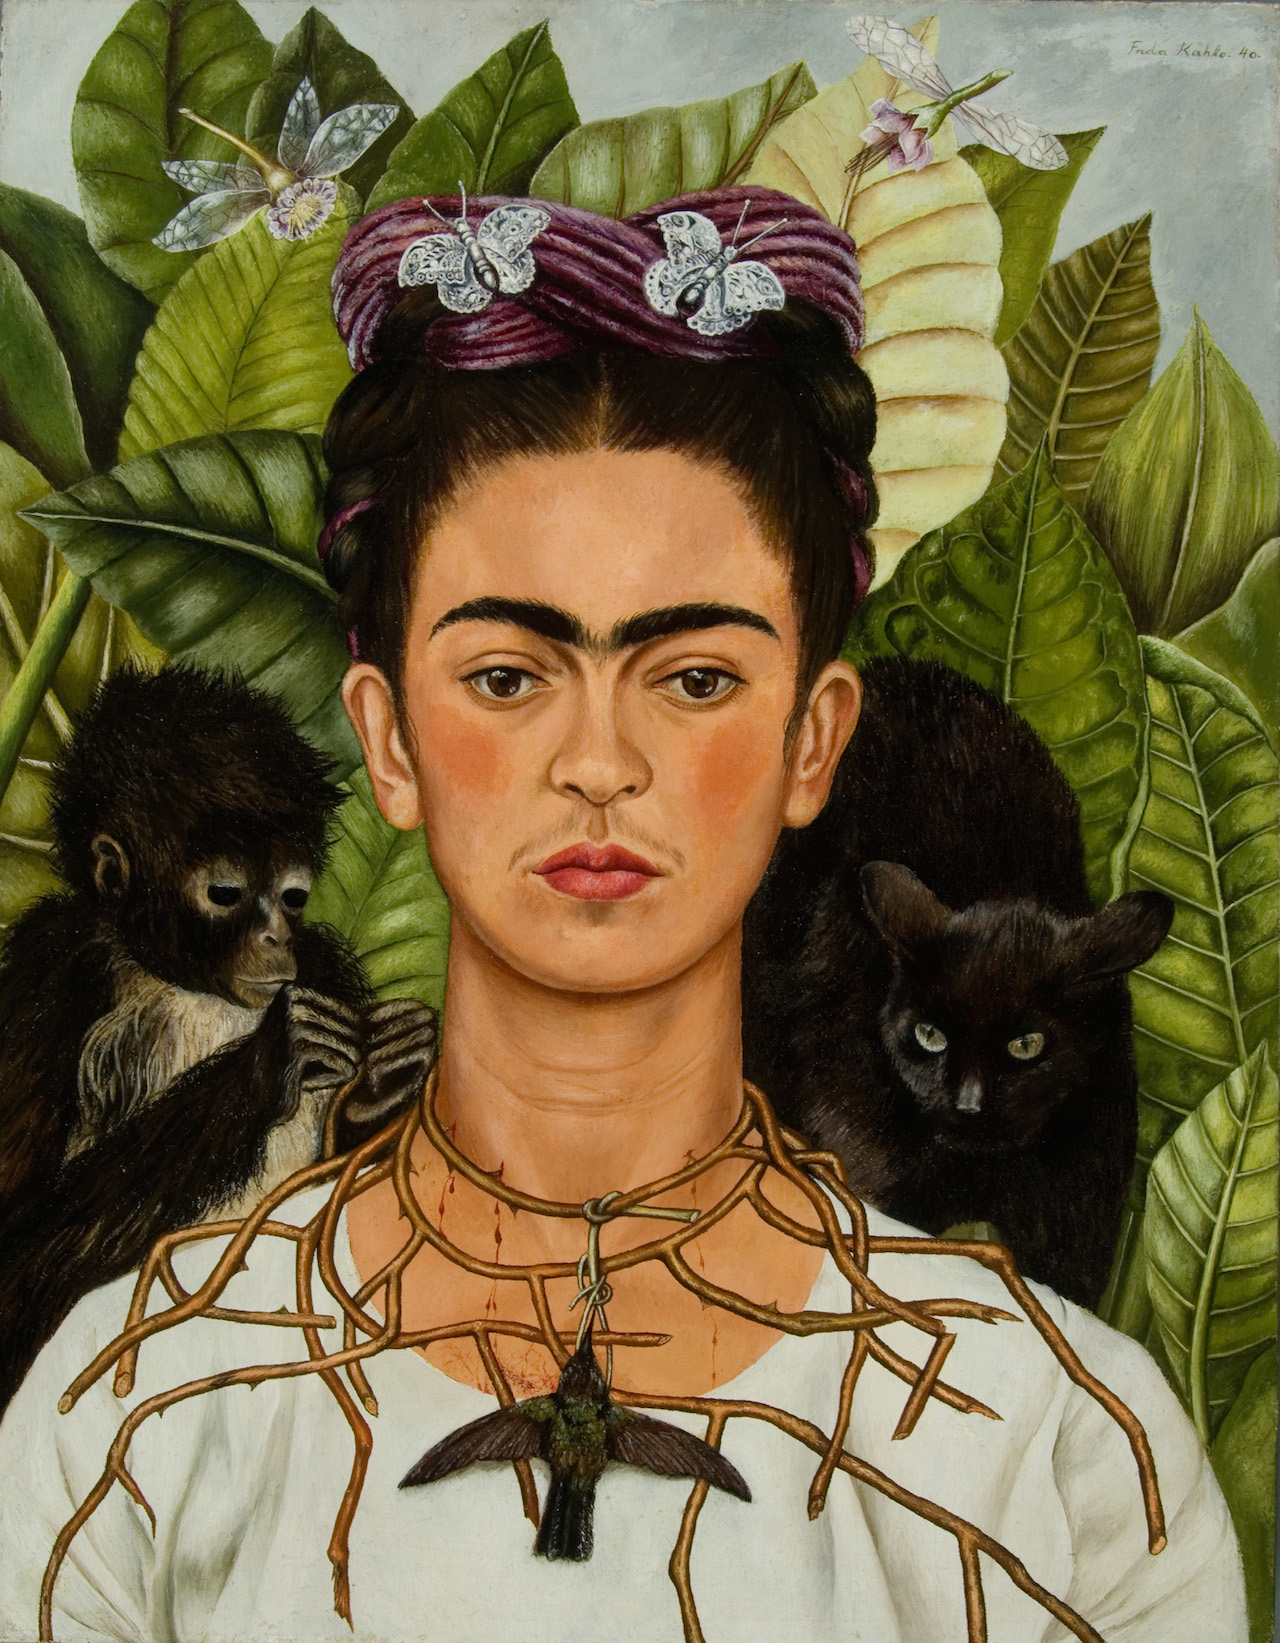 Frida   Kahlo,Self-‐Portrait   with   Thorn    Necklace   and   Hummingbird,1940Harry   Ransom    Center,   The    University   of    Texas   atAustin©   2014    Banco   de    México   Diego    Rivera   Frida    Kahlo   Museums    Trust,   Mexico,   D.F.   /   Artists   Rights   Society   (ARS),   New   YorK